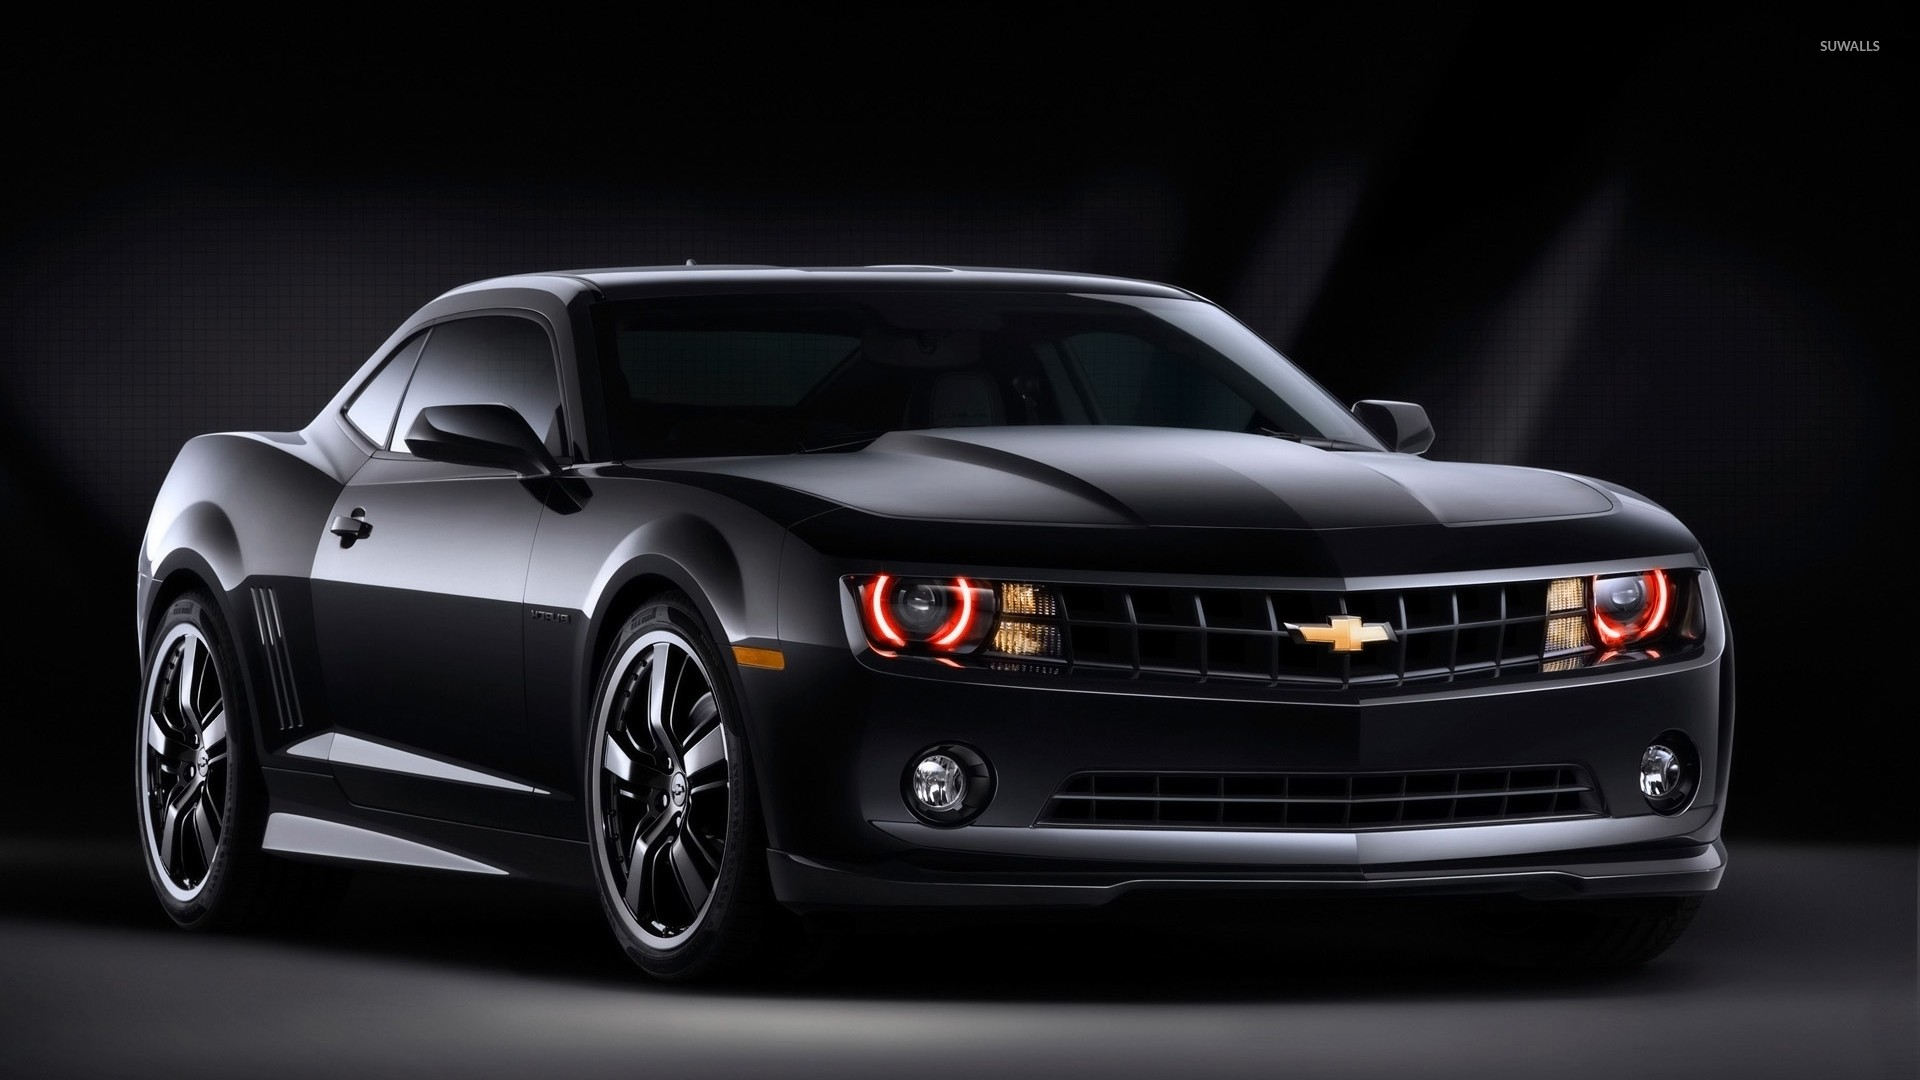 1920x1080 Black Chevrolet Camaro front side view wallpaper  jpg